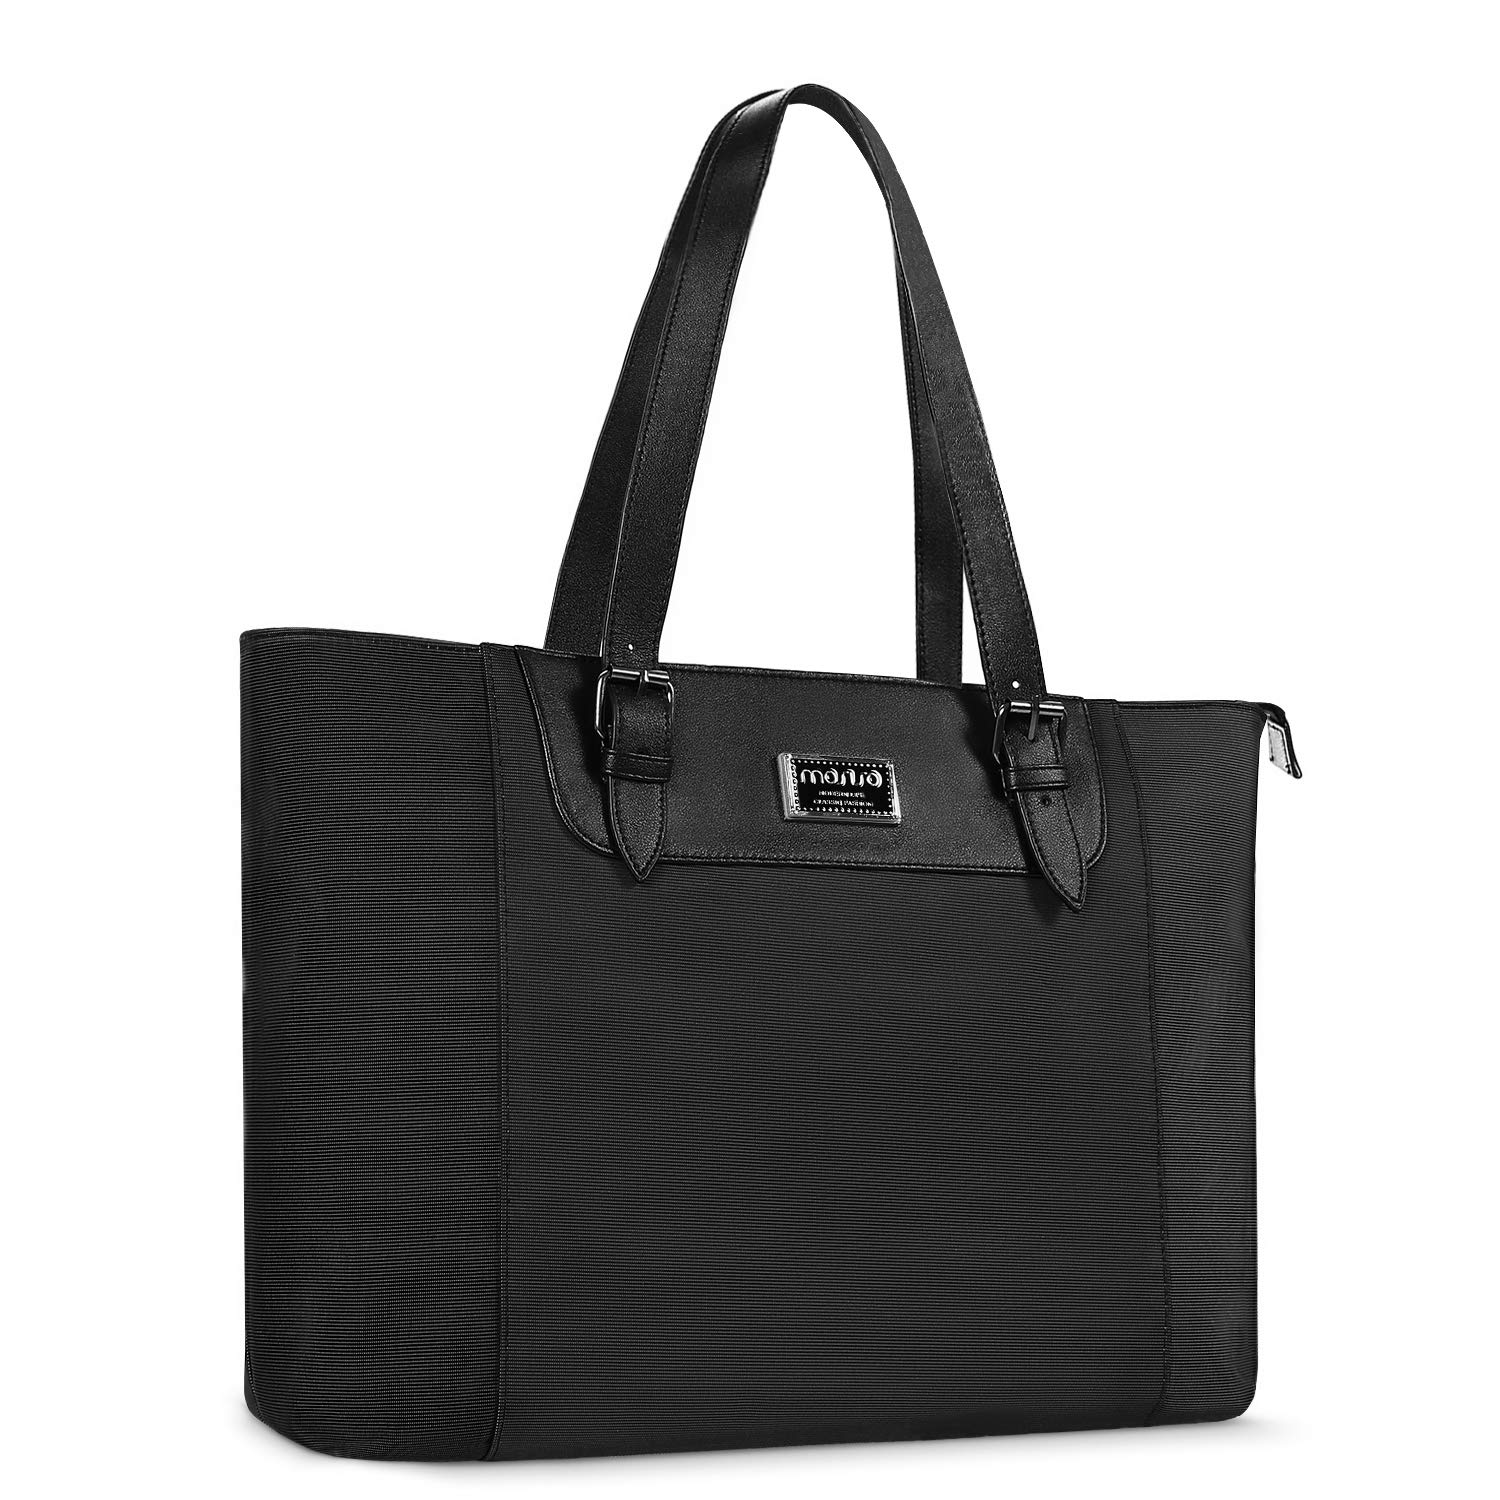 MOSISO Laptop Tote Bag (Compatible 15.6-17 Inch MacBook & Notebook), Water Repellent Multi-Pocket Large Capacity Business Work Briefcase Handbag with Adjustable Strap & Padded Compartment, Black